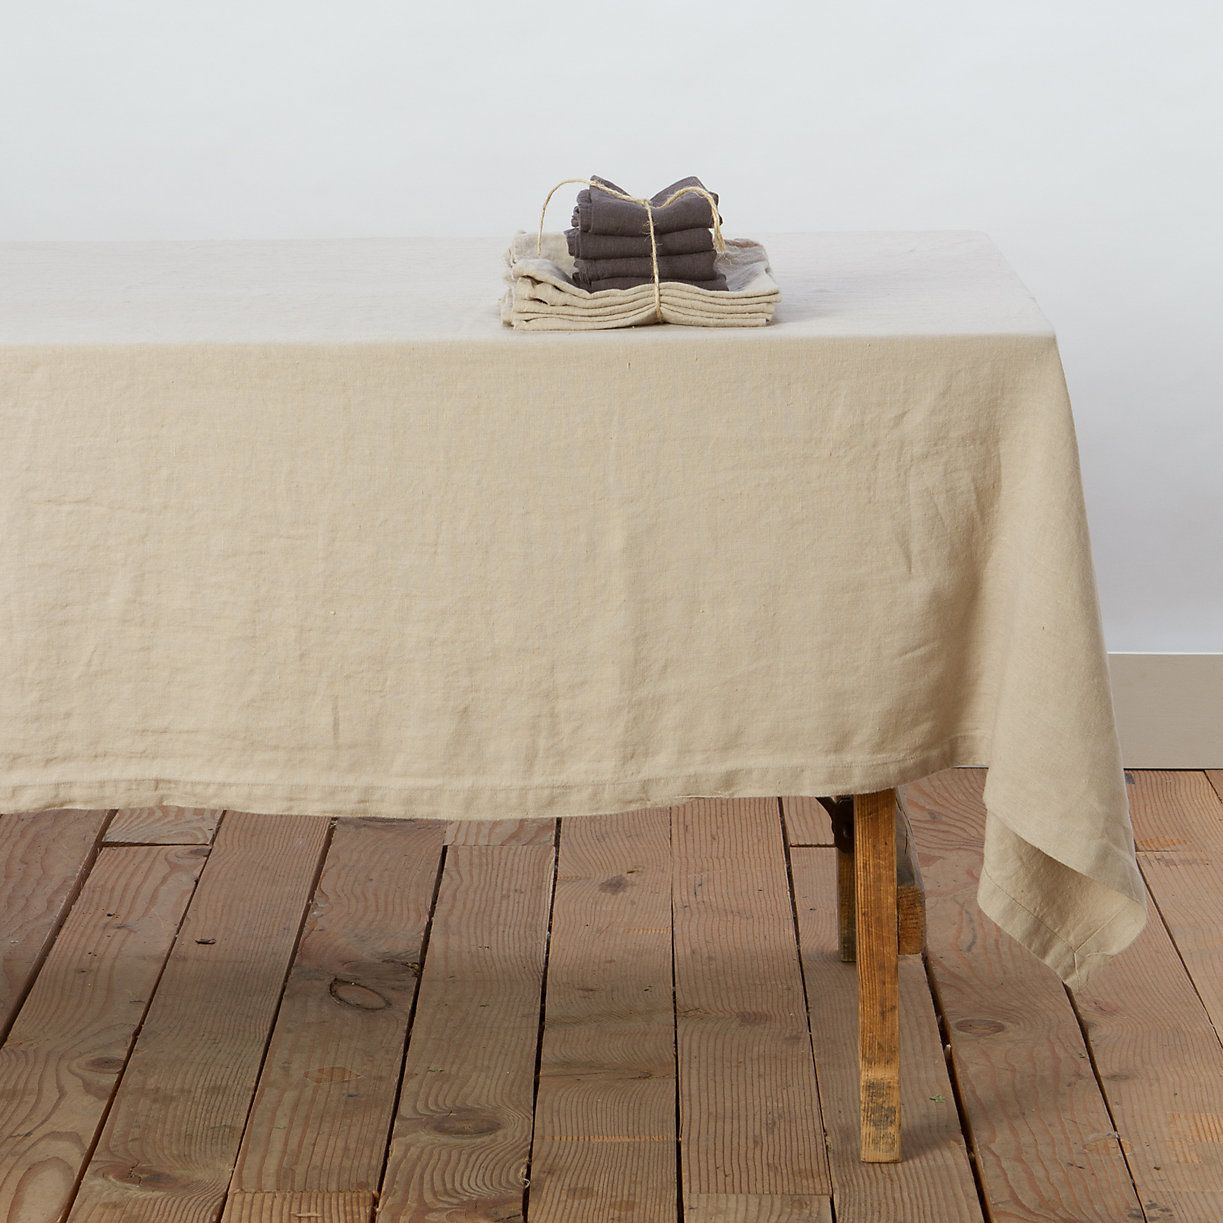 Washed Linen Tablecloth   Linen tablecloth, Linens and Shop ideas